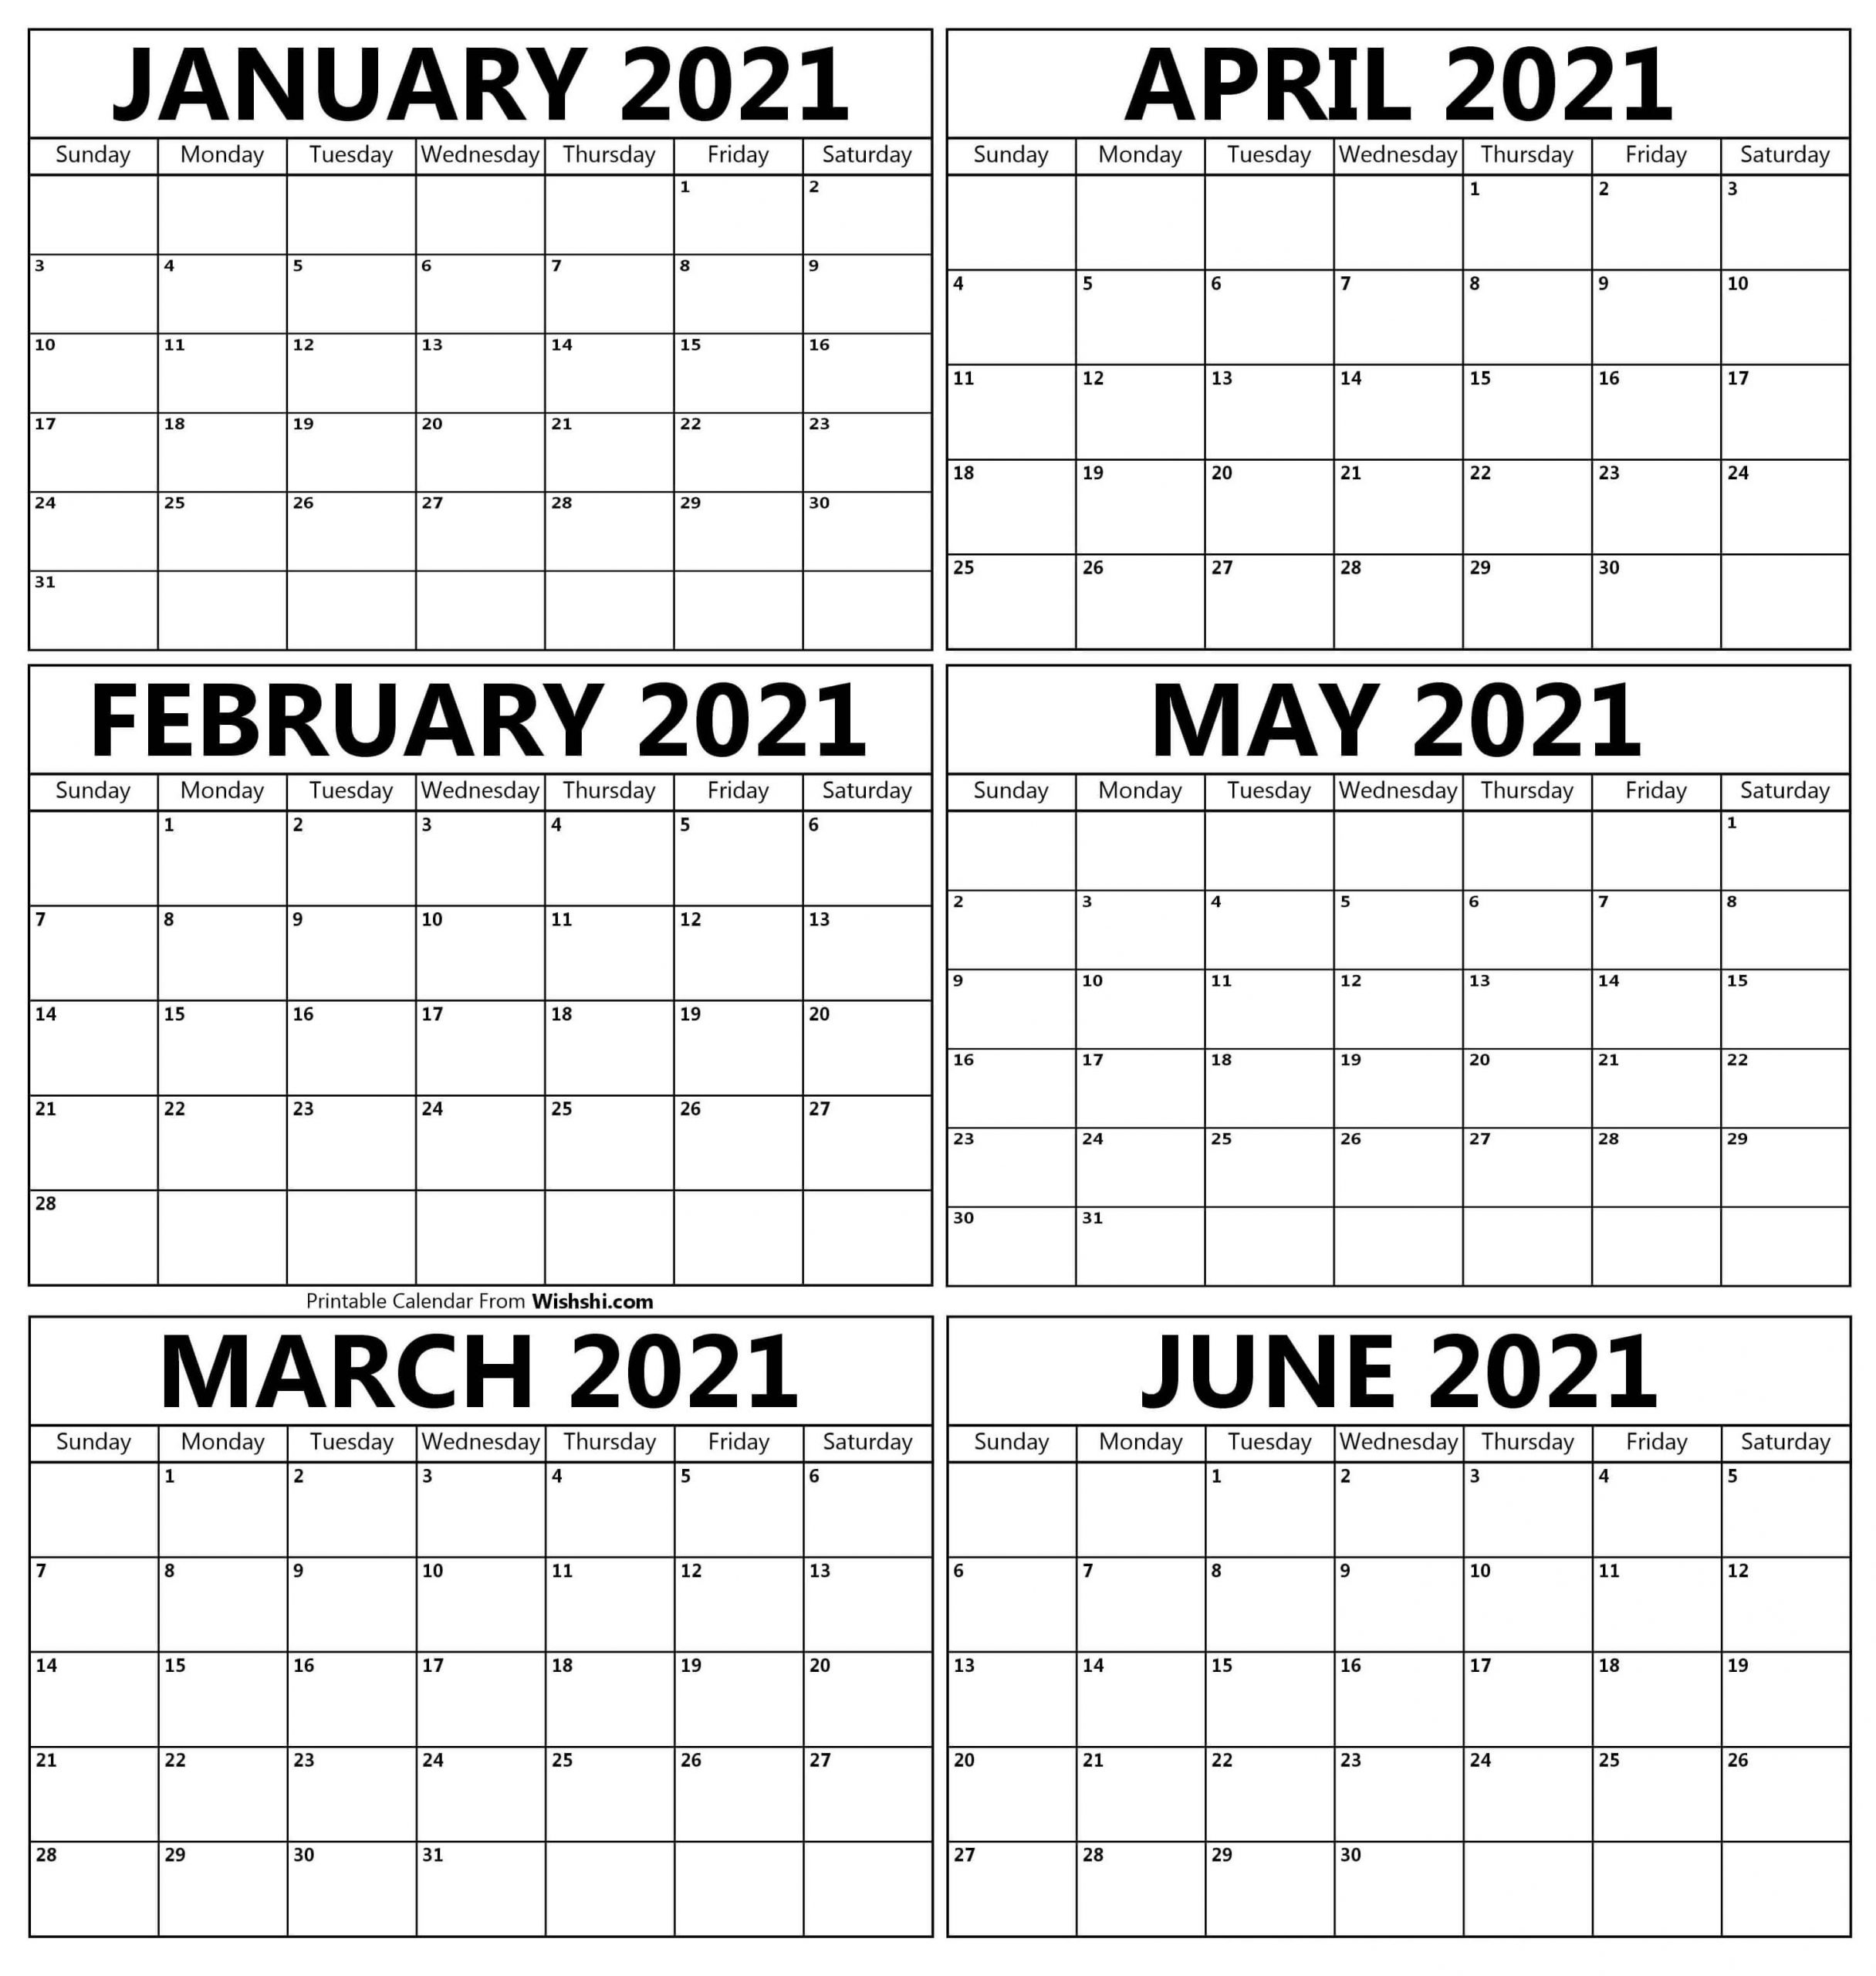 Get Calendar Template June 2021 With Time Slots